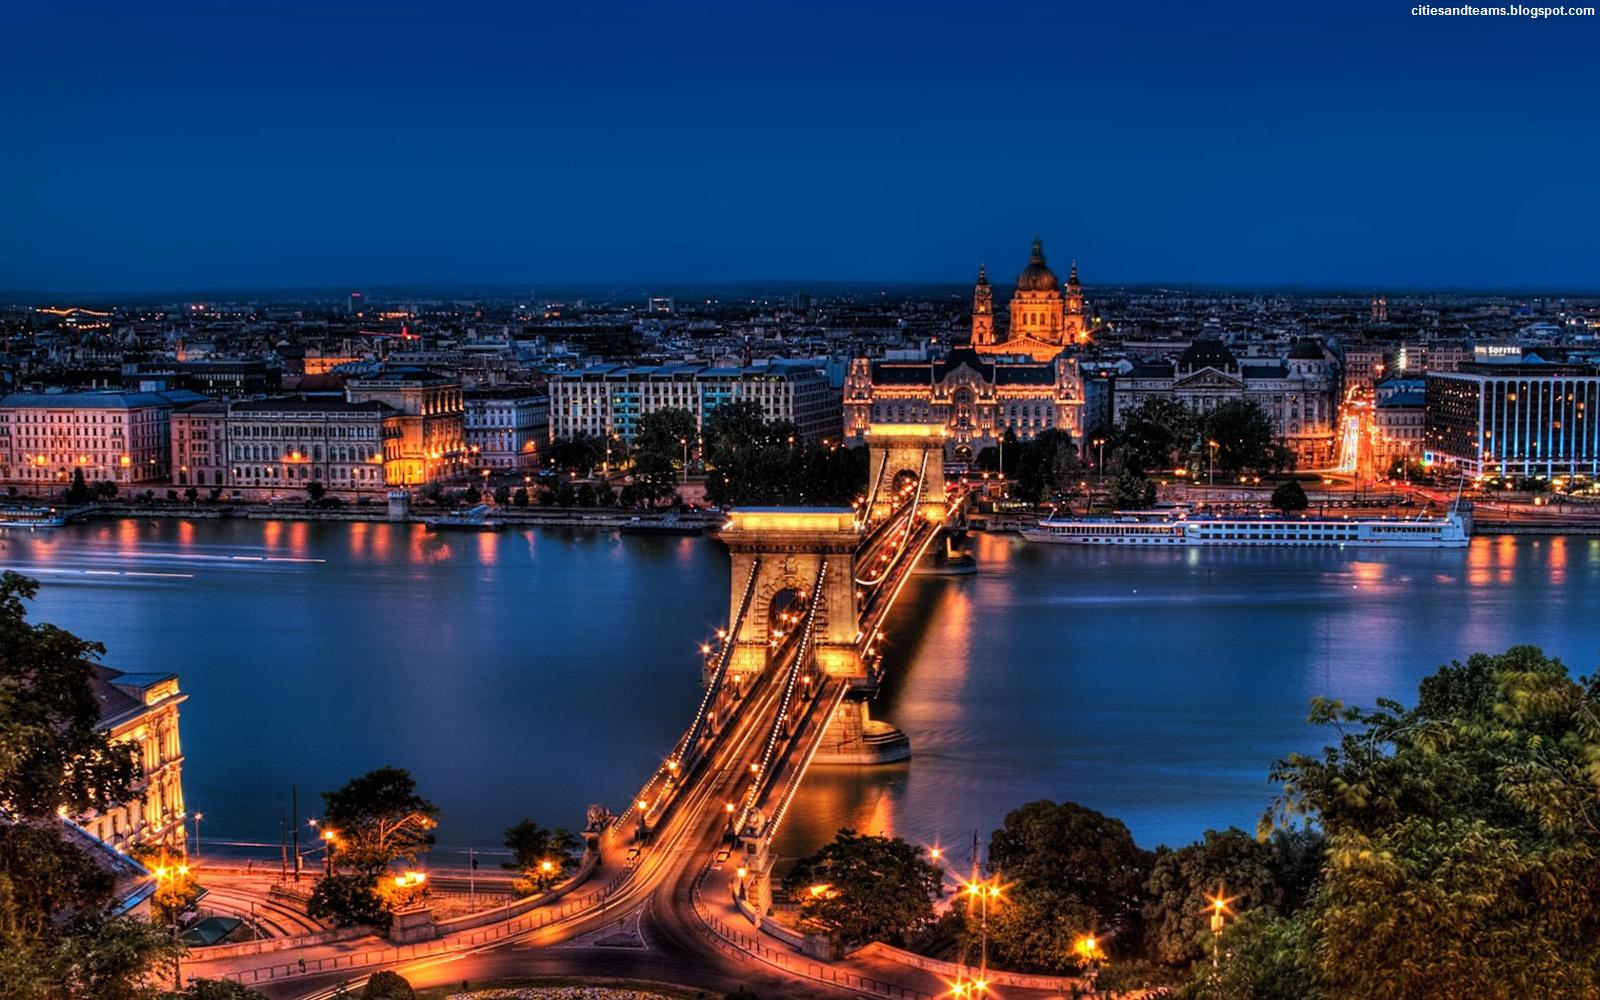 Capital City Hungary Hd Desktop Wallpaper Image Gallery and HD 1600x1000